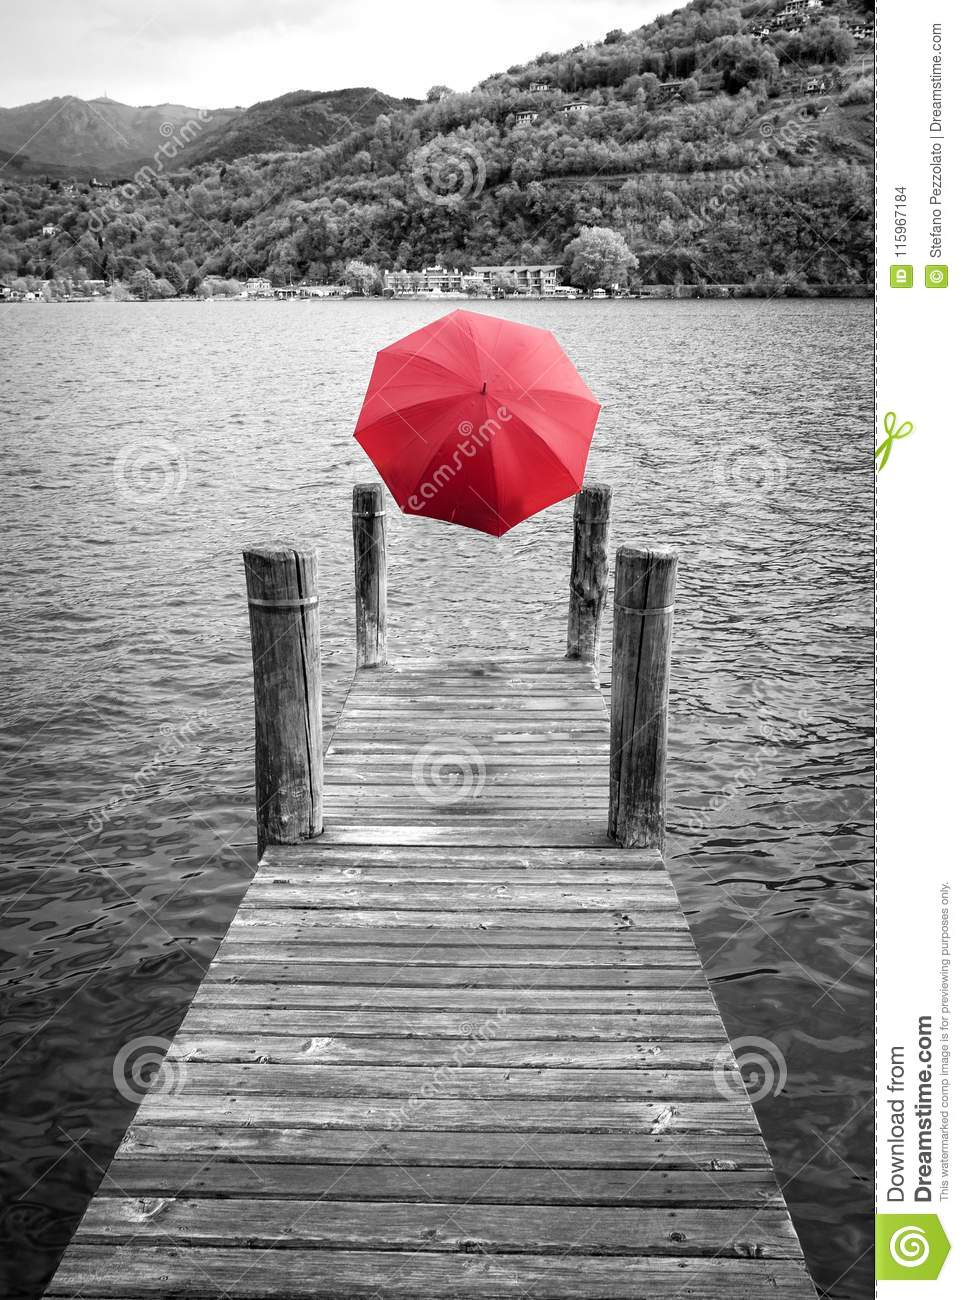 A ghost with a red umbrella on the shores of lake orta piedmont northern italy add film effect